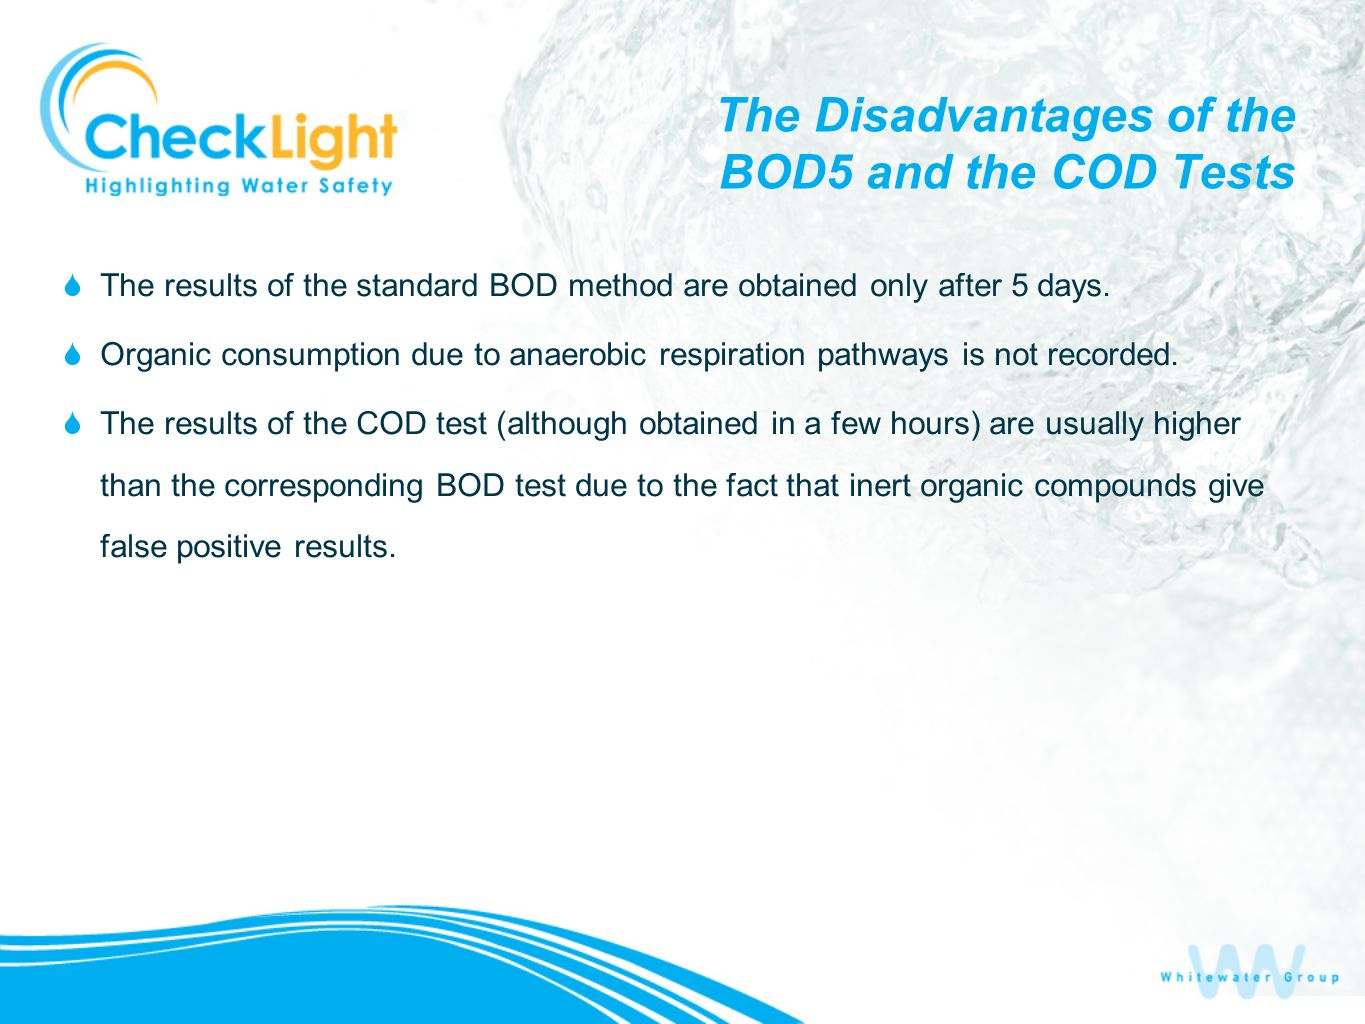 The Disadvantages of the BOD5 and the COD Tests